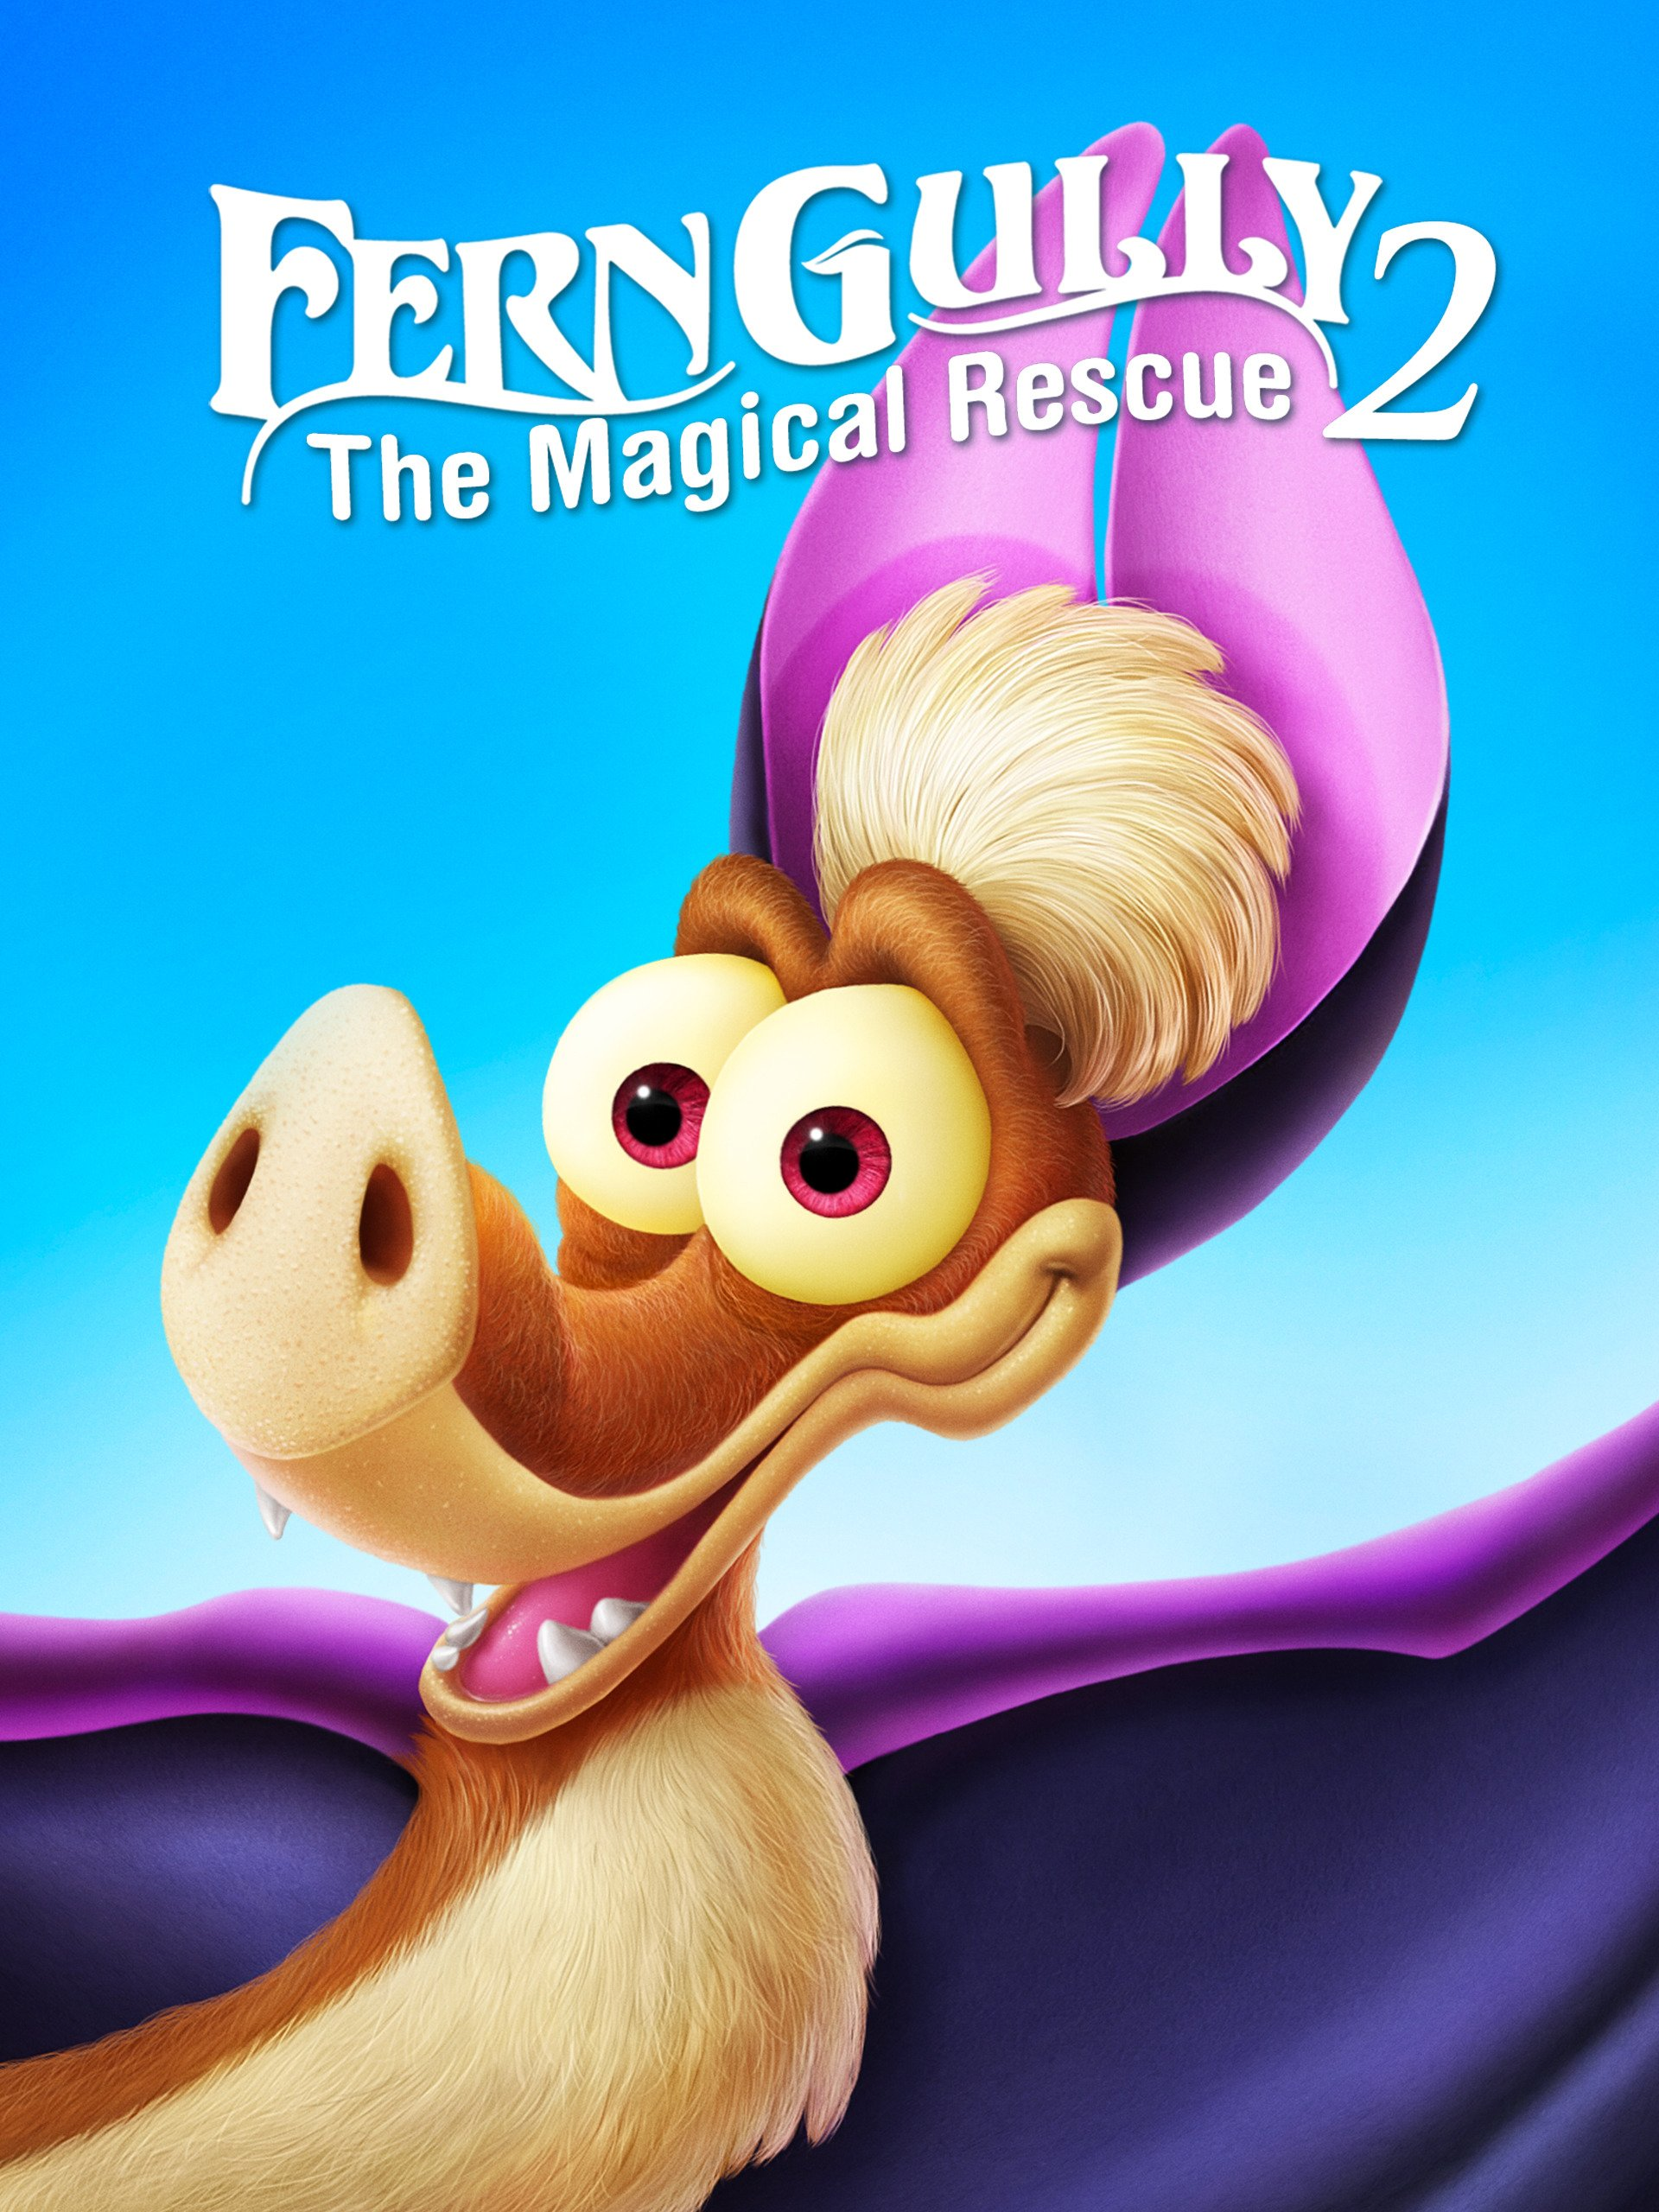 ferngully 2 the magical rescue full movie online free